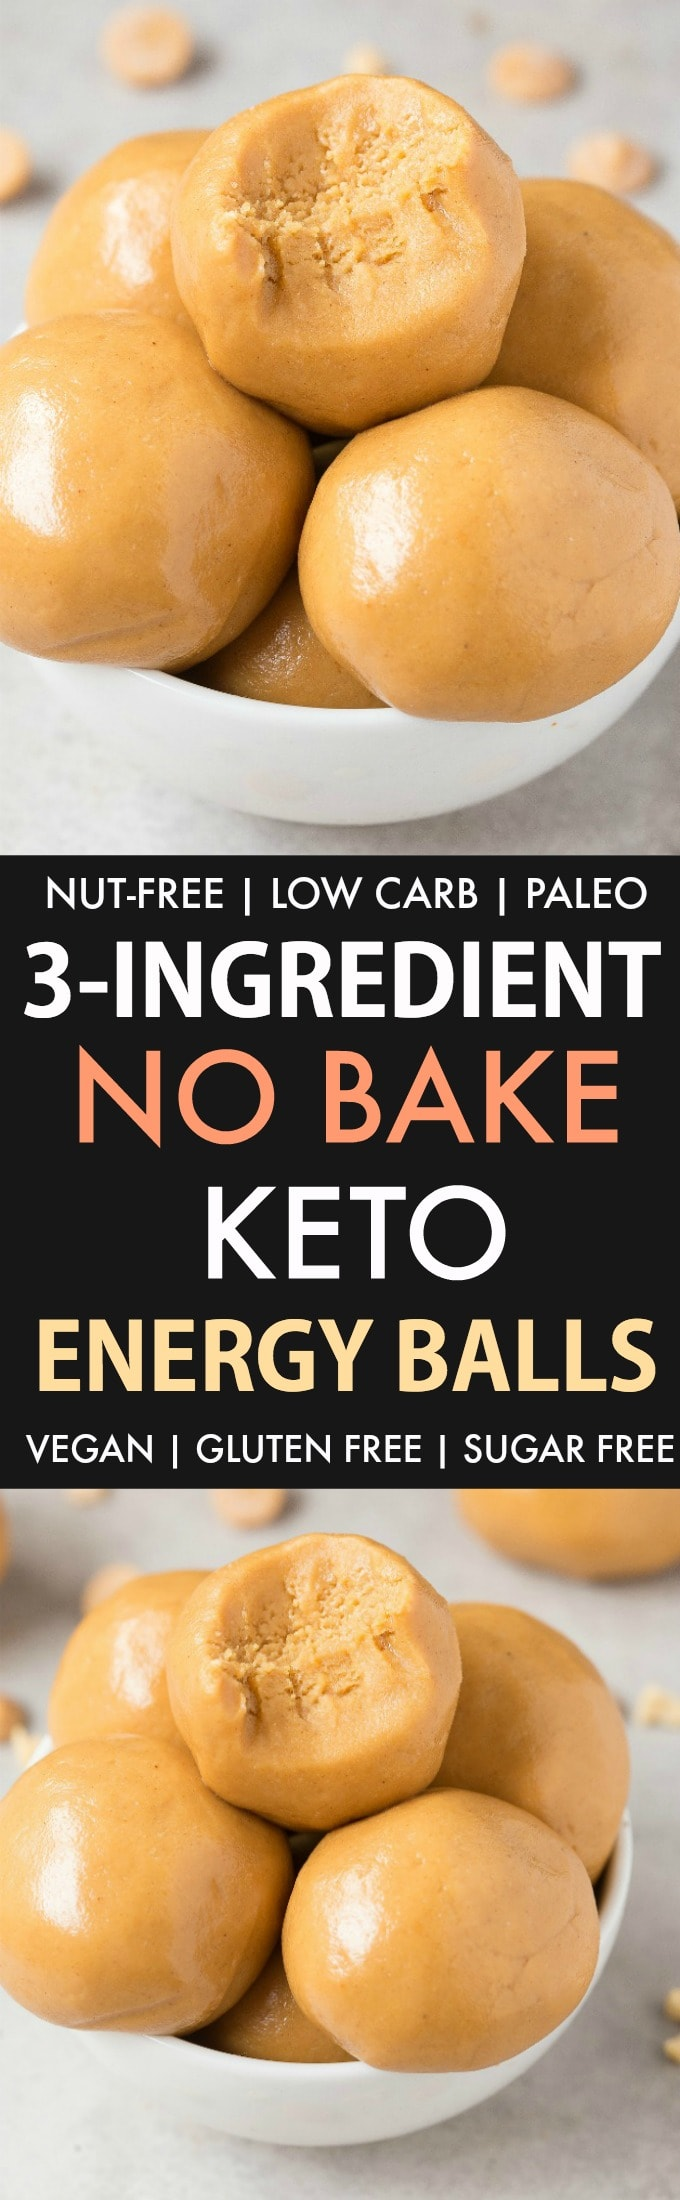 3 Ingredient No Bake Keto Energy Balls (Paleo, Vegan, Nut-Free, Low Carb)- An easy 5 minute keto bliss ball recipe made with just 3 ingredients and 100% Nut-free and sugar-free! The perfect quick and easy snack! #nutfree #ketosnack #ketosis #allergenfriendly #energyballs | Recipe on thebigmansworld.com